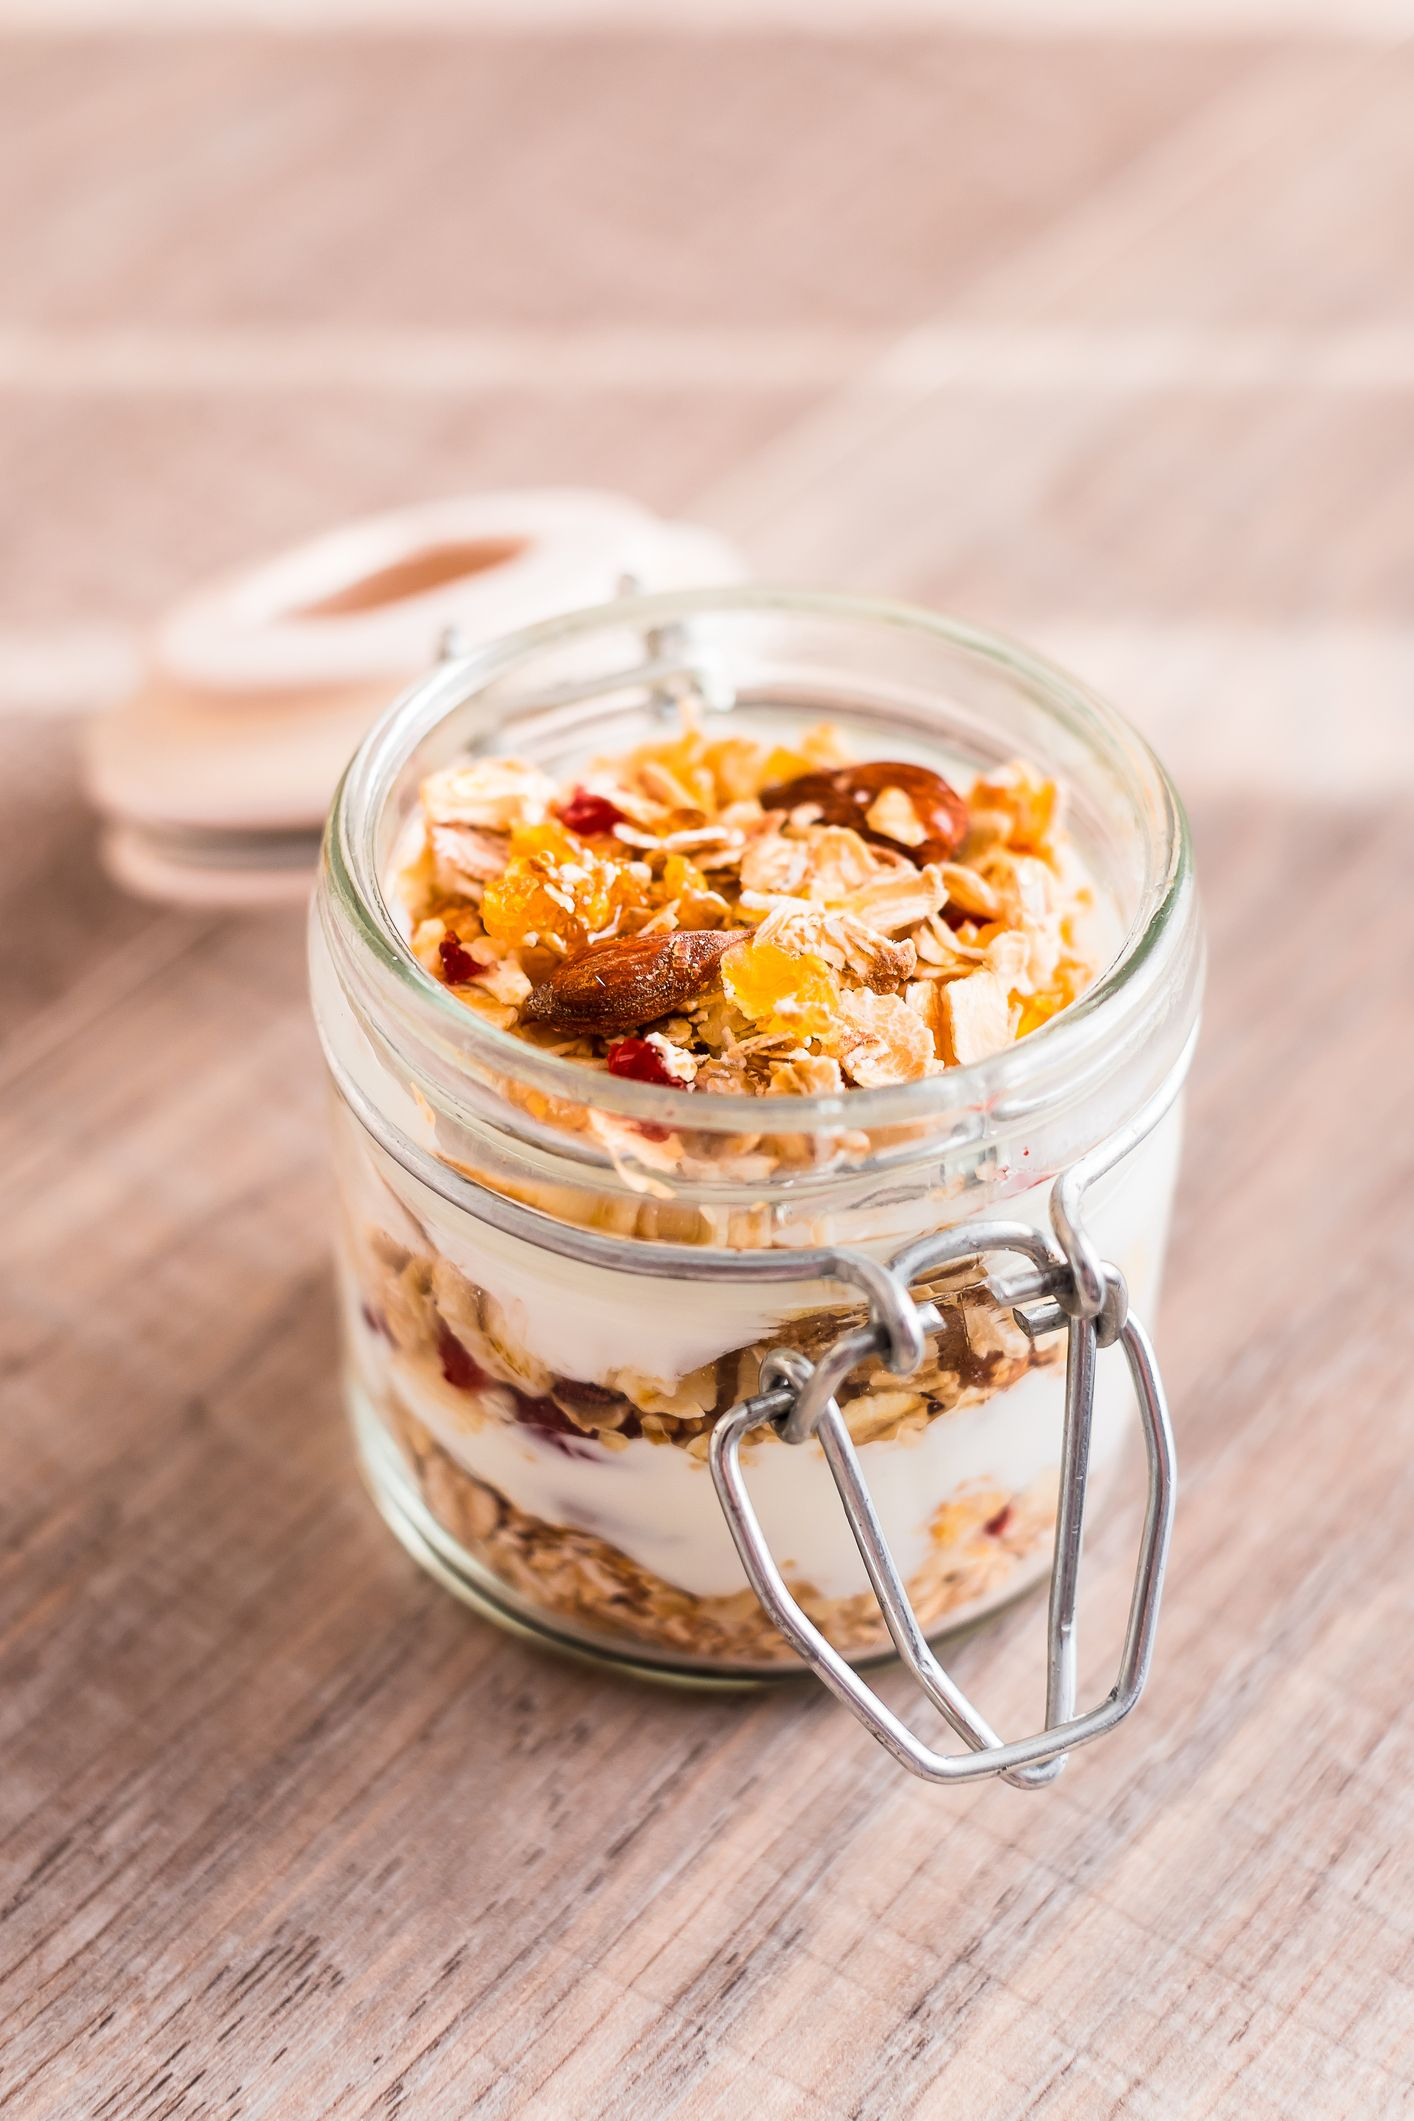 Traditional breakfast from Switzerland. Jar of homemade muesli bircher with plain yogurt, toasted oat flakes, almonds, peanuts, dried fruits and honey on a wooden table, selective focus. Organic food.